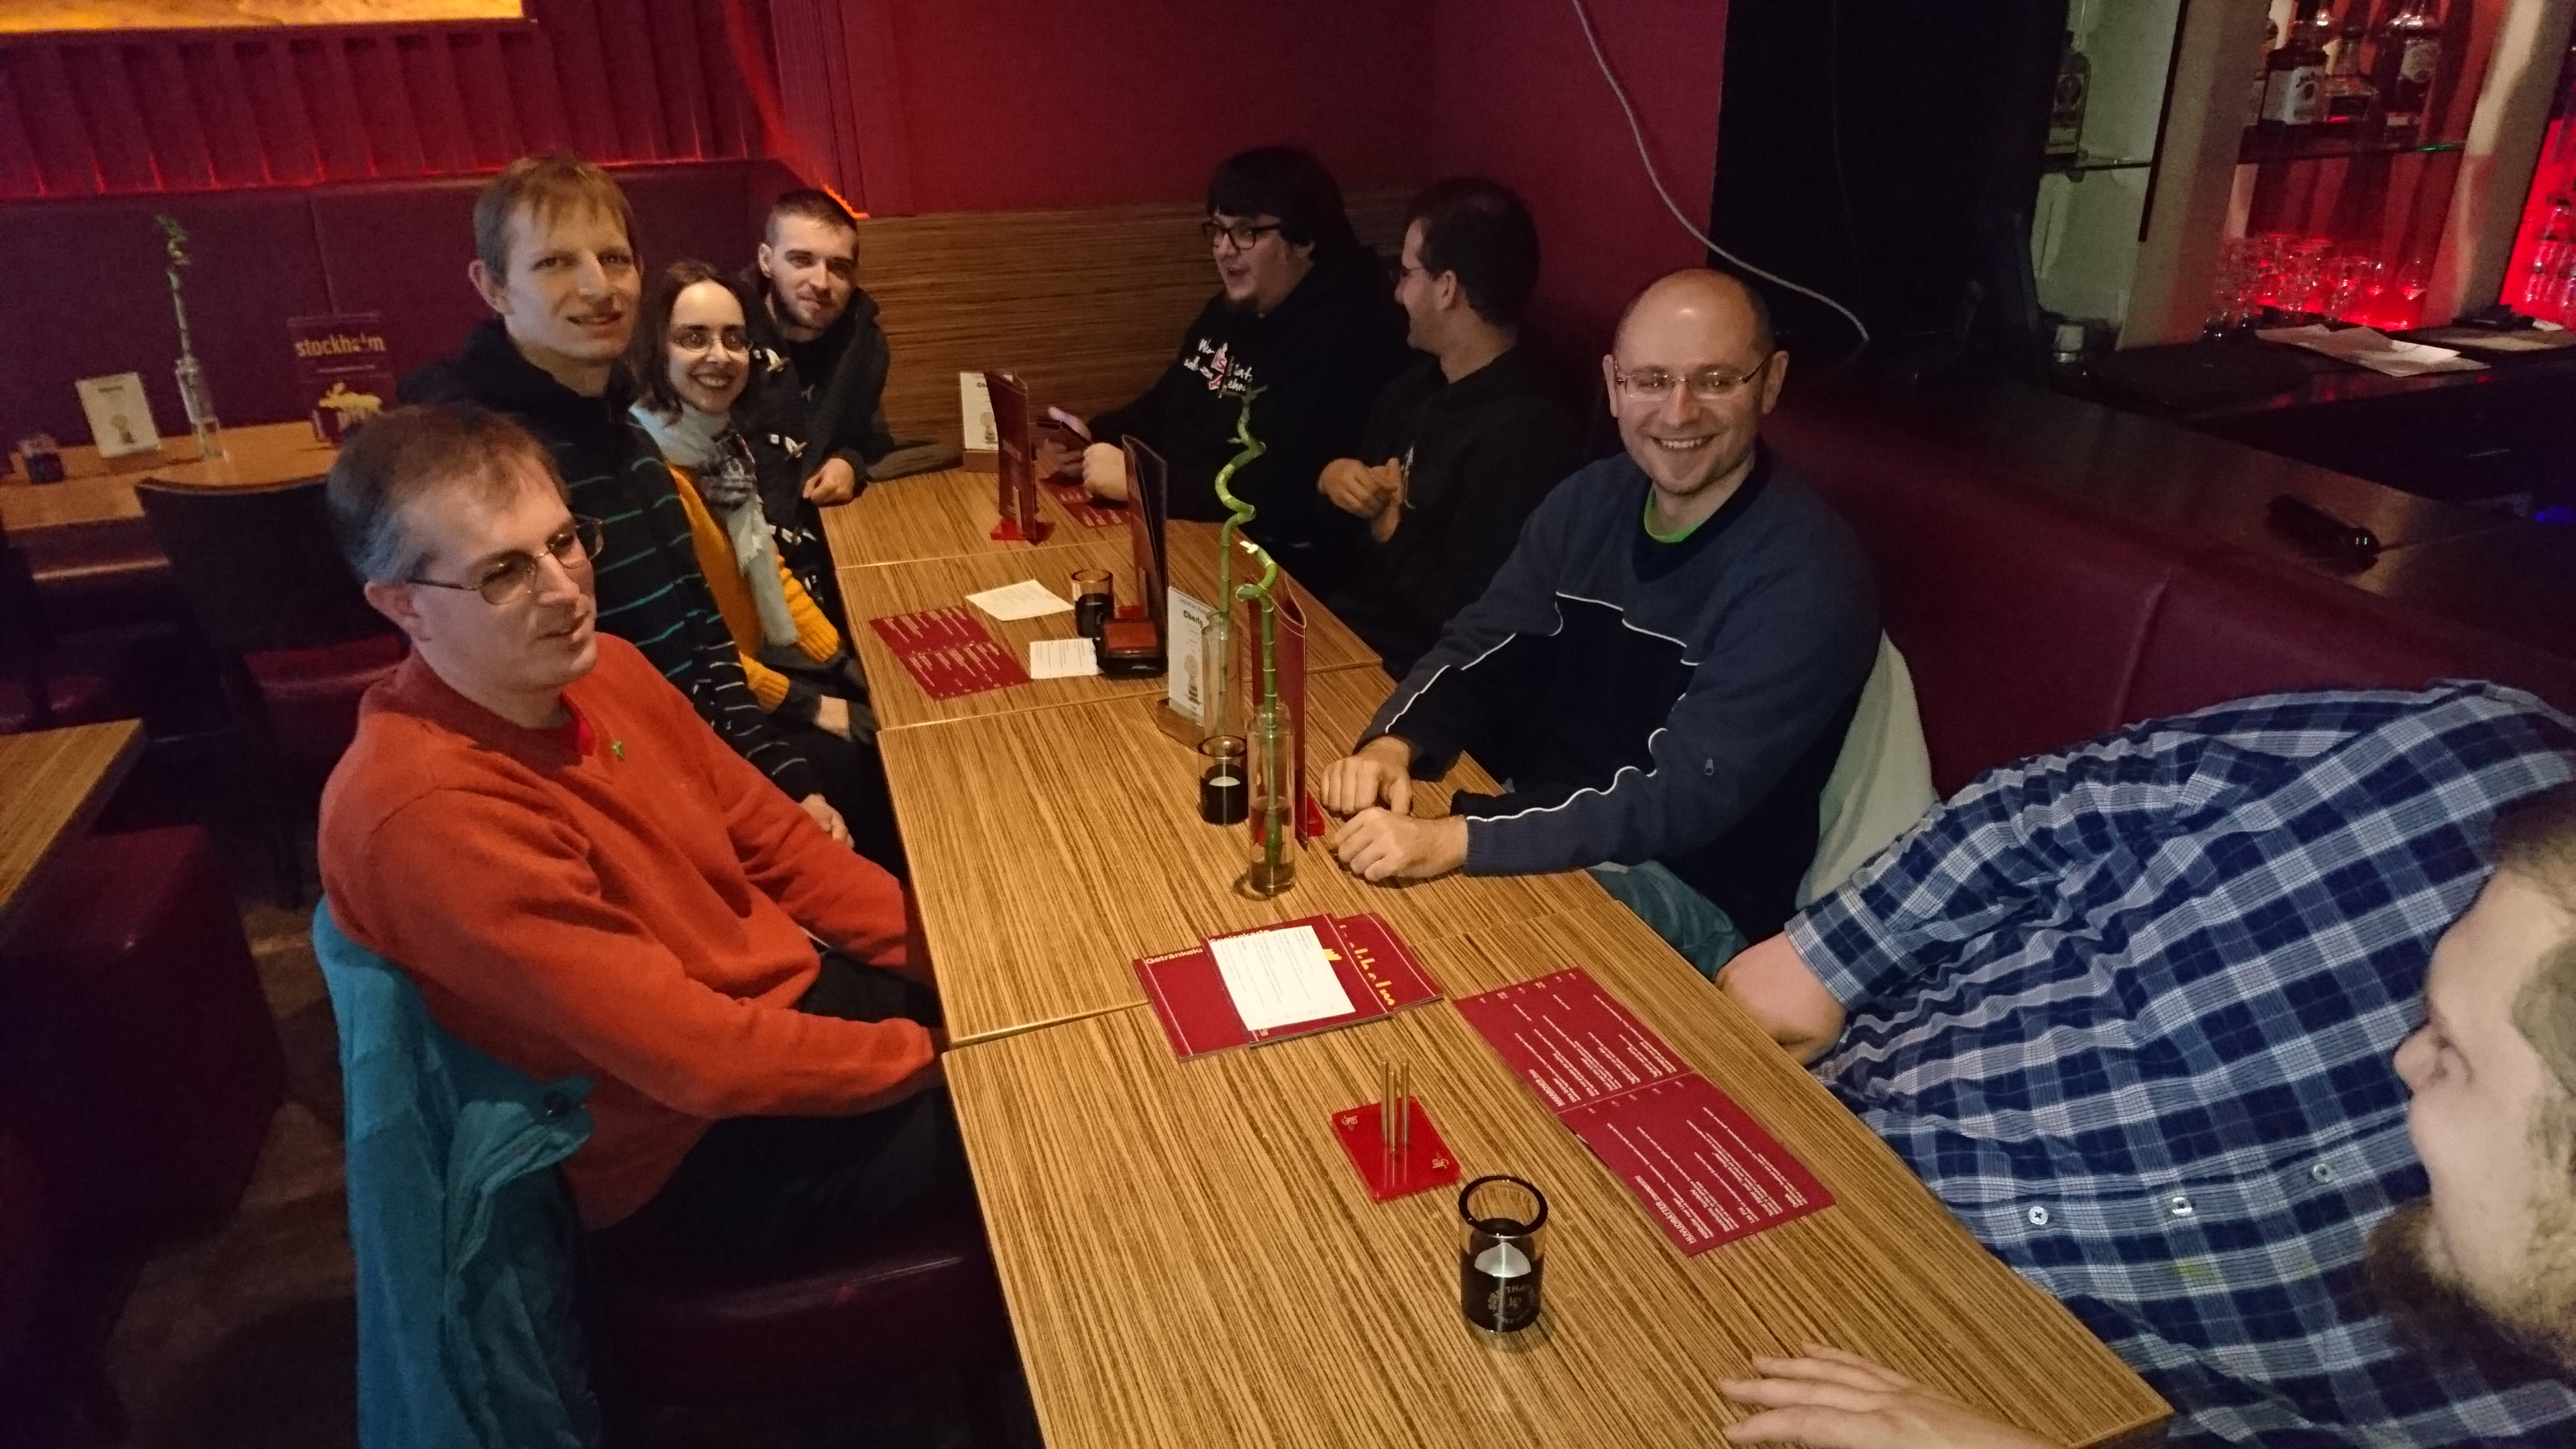 openSUSE Heroes out for lunch.